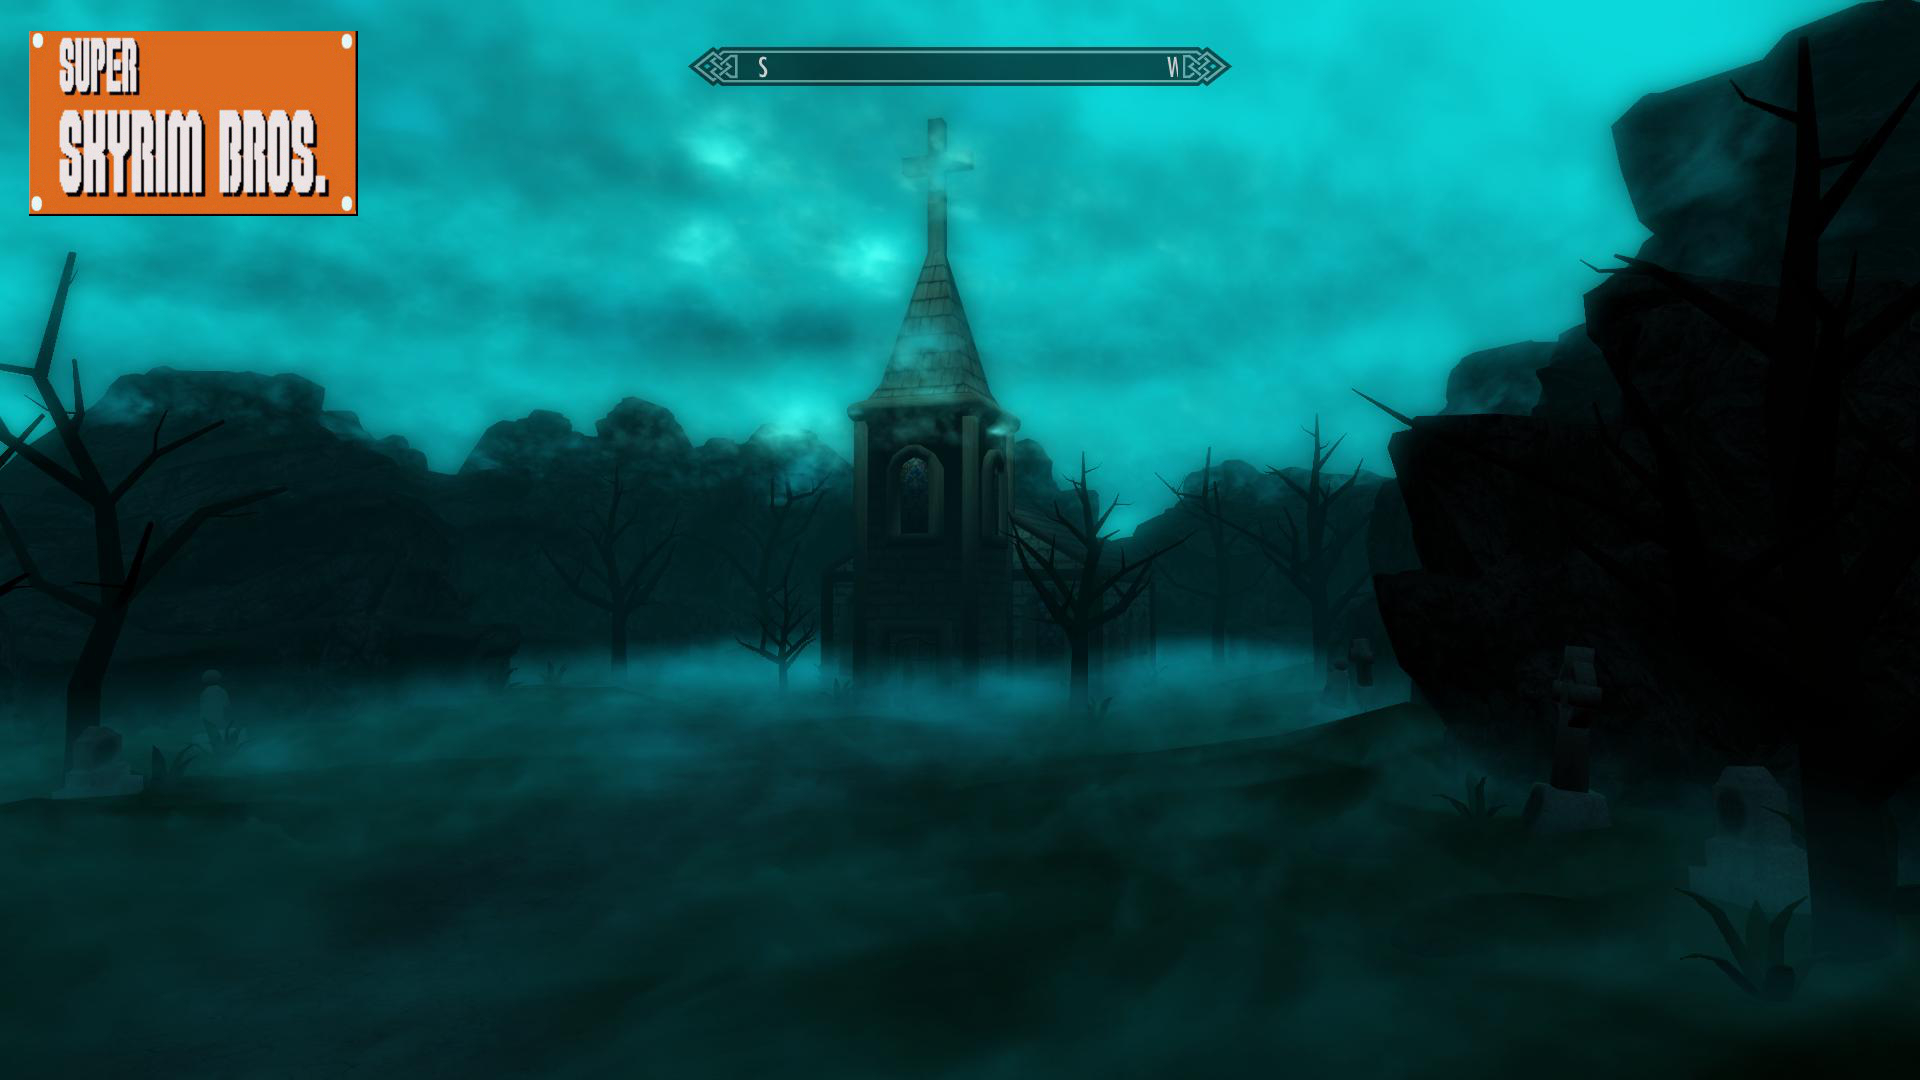 SUPER SKYRIM BROS_Haunted Church